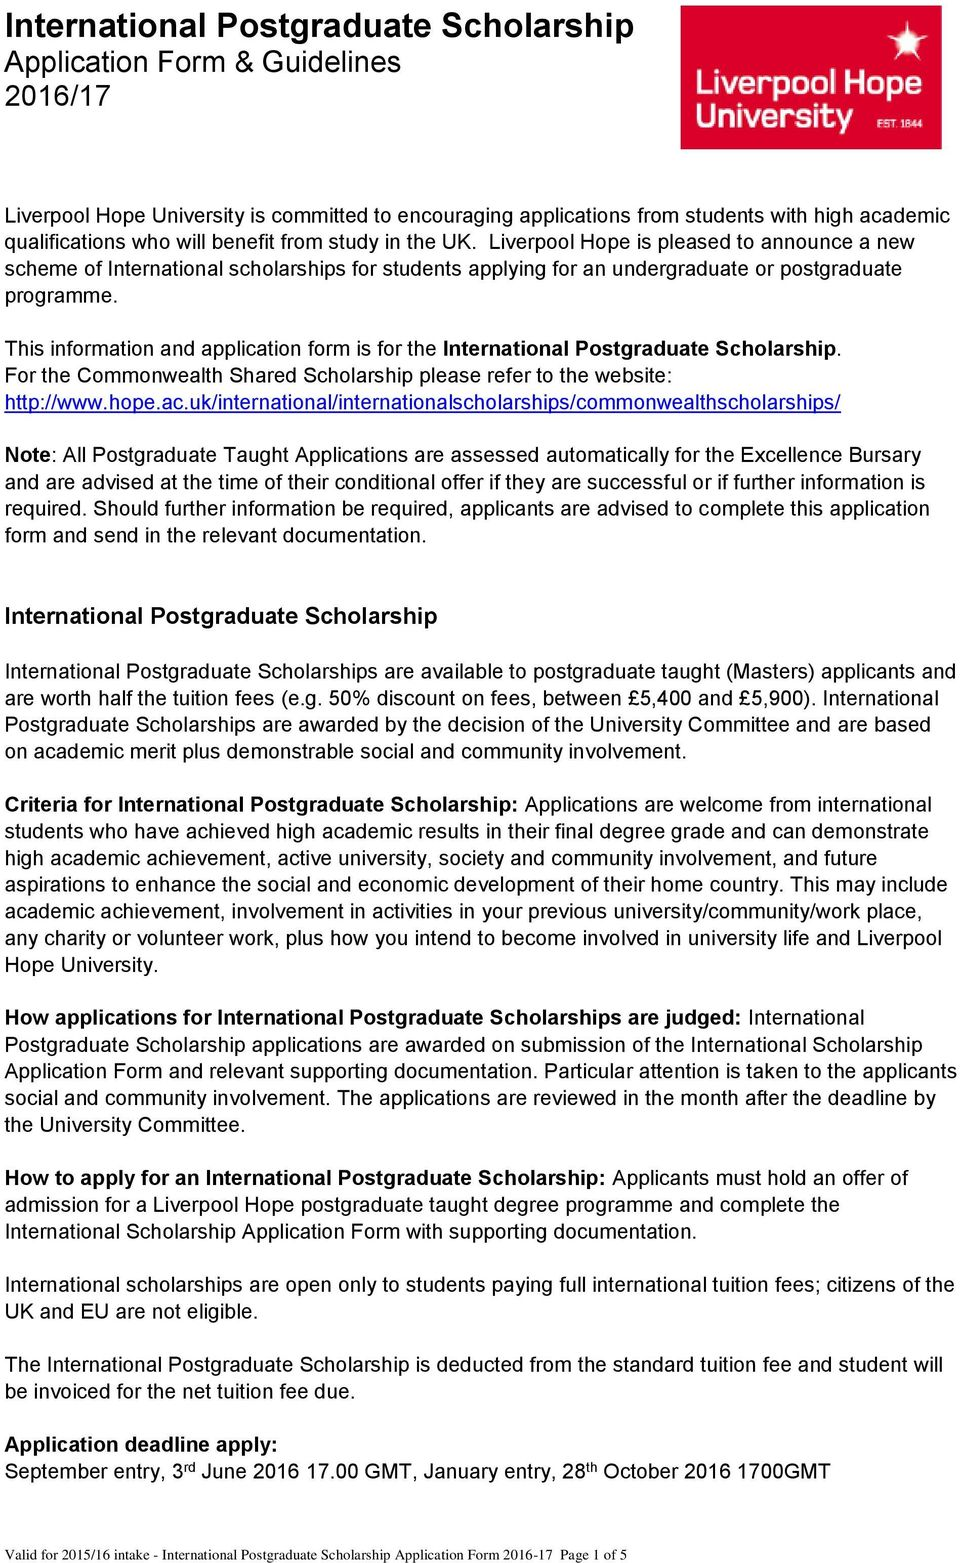 This information and application form is for the International Postgraduate Scholarship. For the Commonwealth Shared Scholarship please refer to the website: http://www.hope.ac.